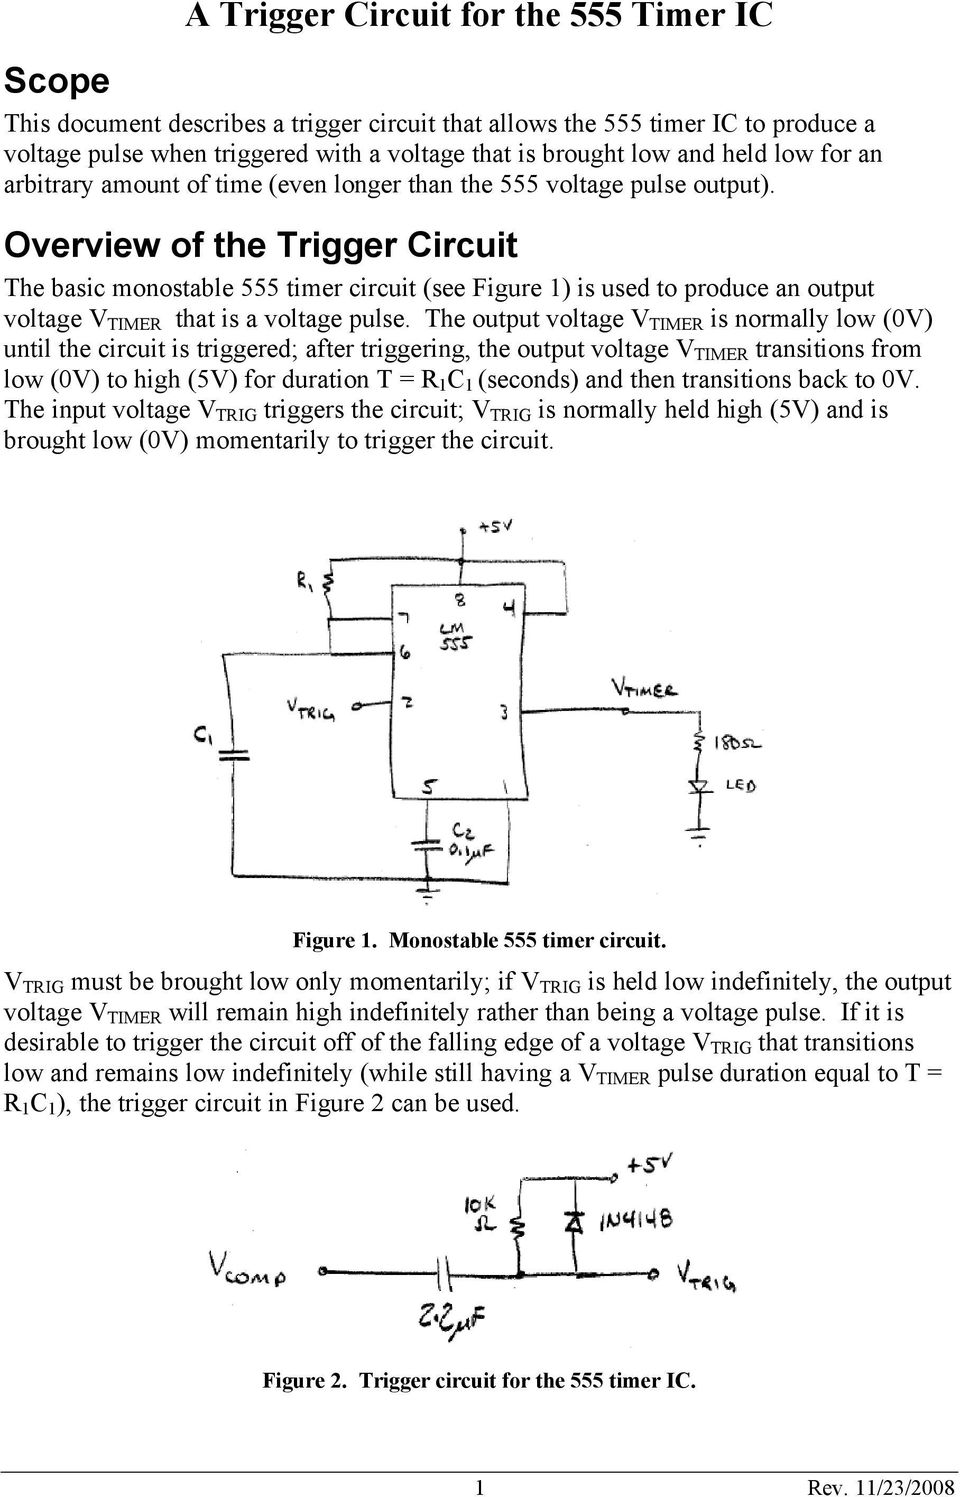 A Trigger Circuit For The 555 Timer Ic Scope Pdf Internal Structure Working Pin Diagram And Description Overview Of Basic Monostable See Figure 1